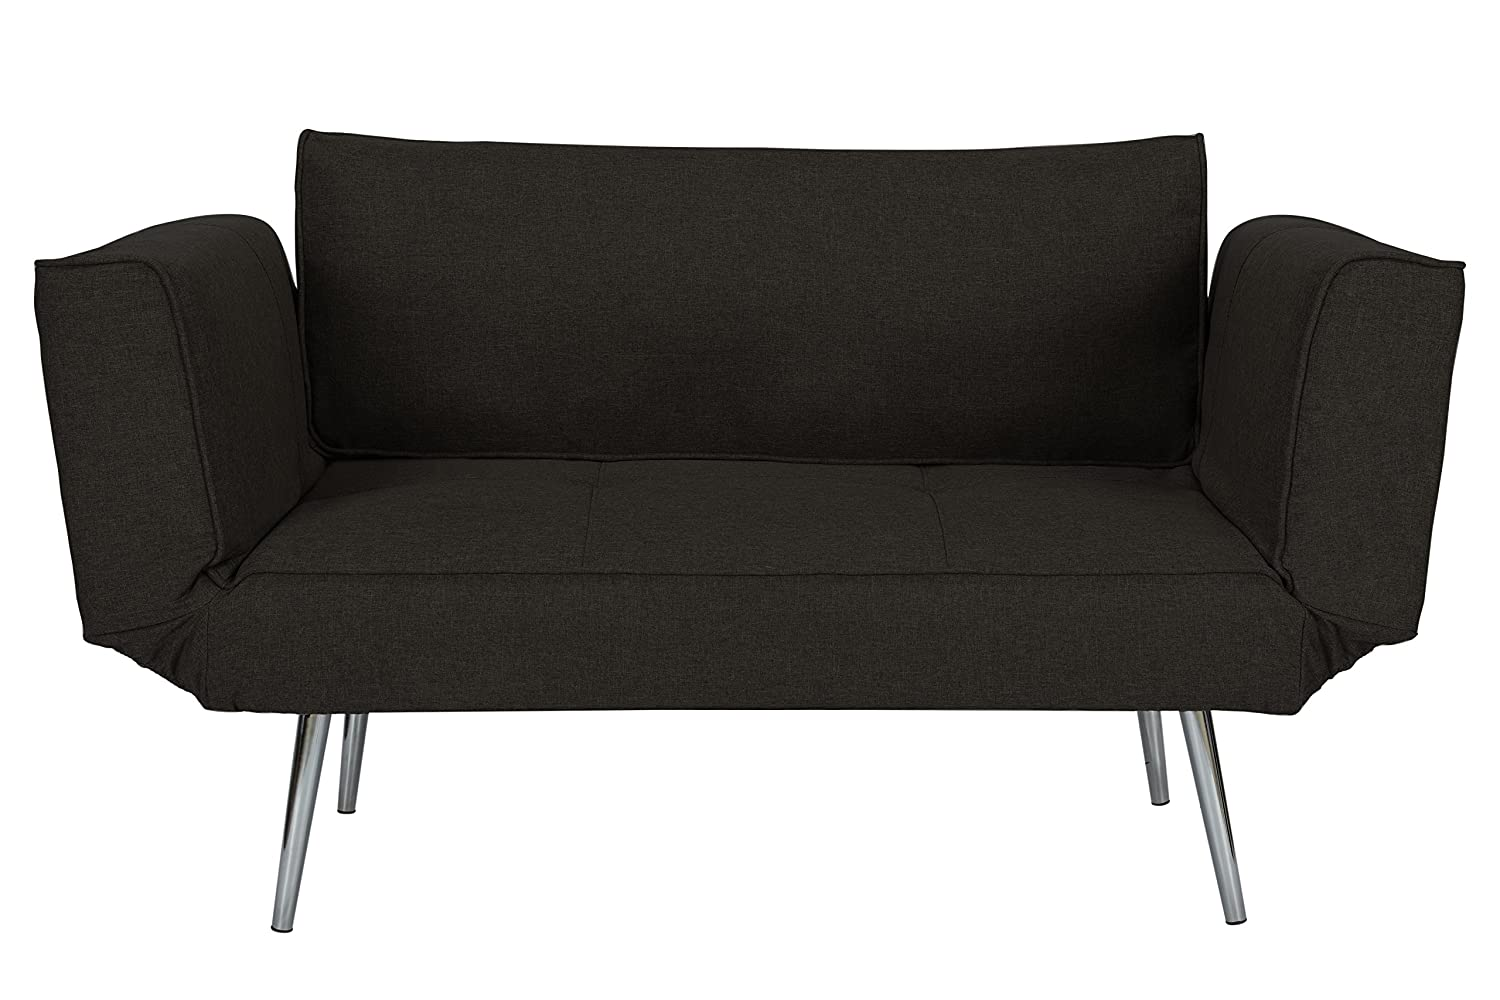 Gentil Amazon.com: DHP Euro Sofa Futon Loveseat With Chrome Legs And Adjustable  Armrests   Black: Home U0026 Kitchen